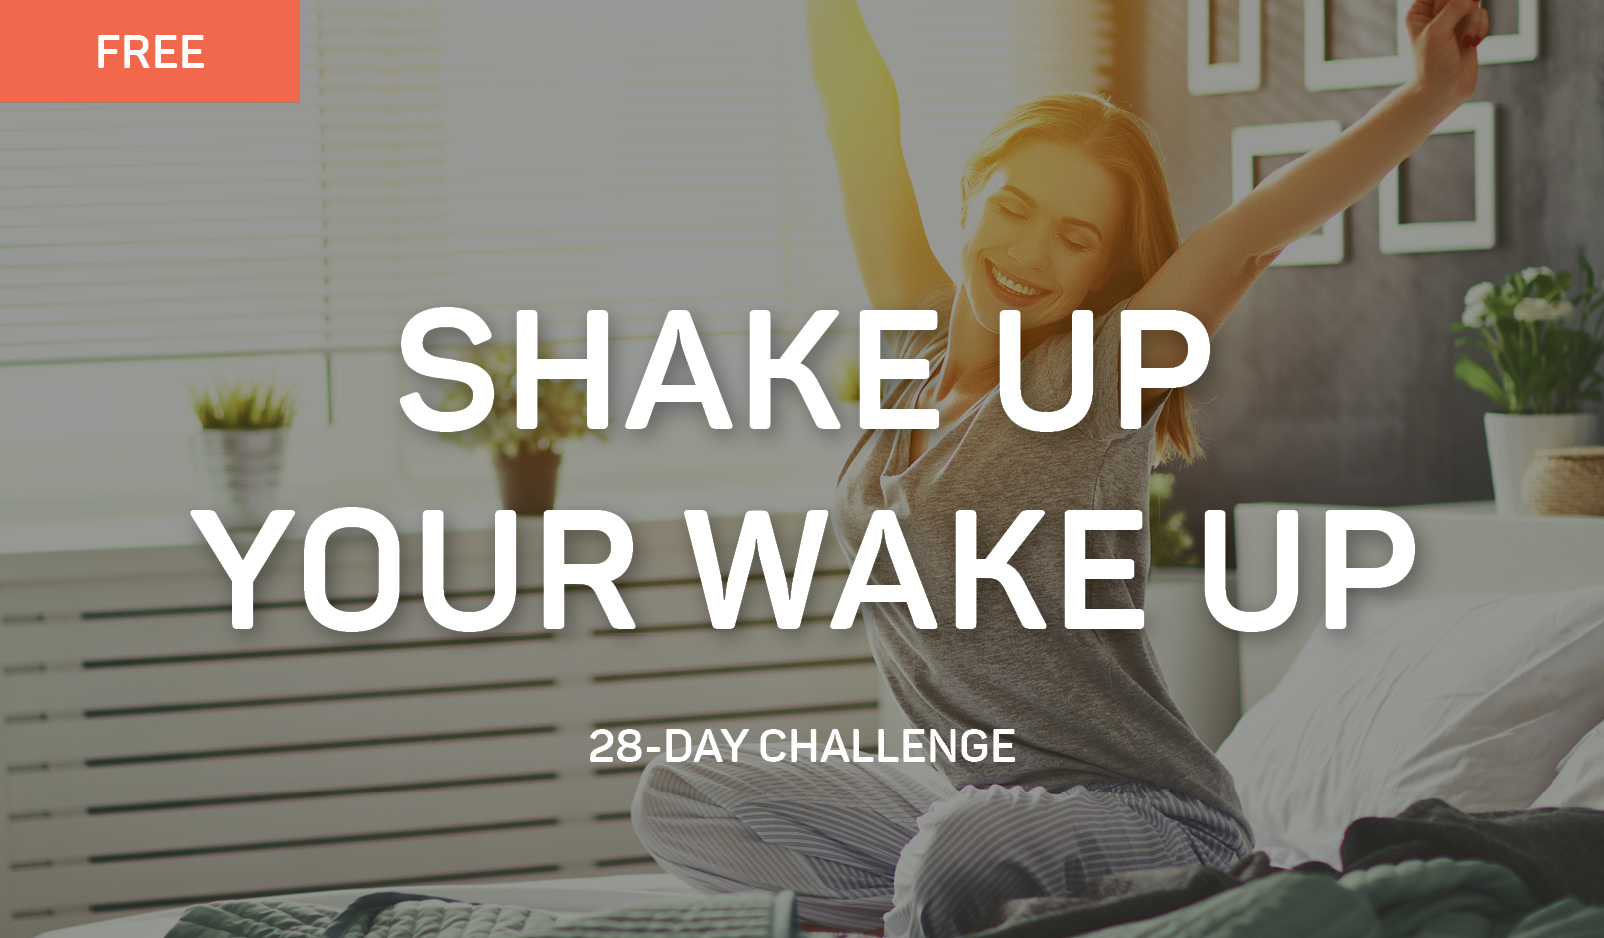 Shake up Your Wake Up Fitness Challenge